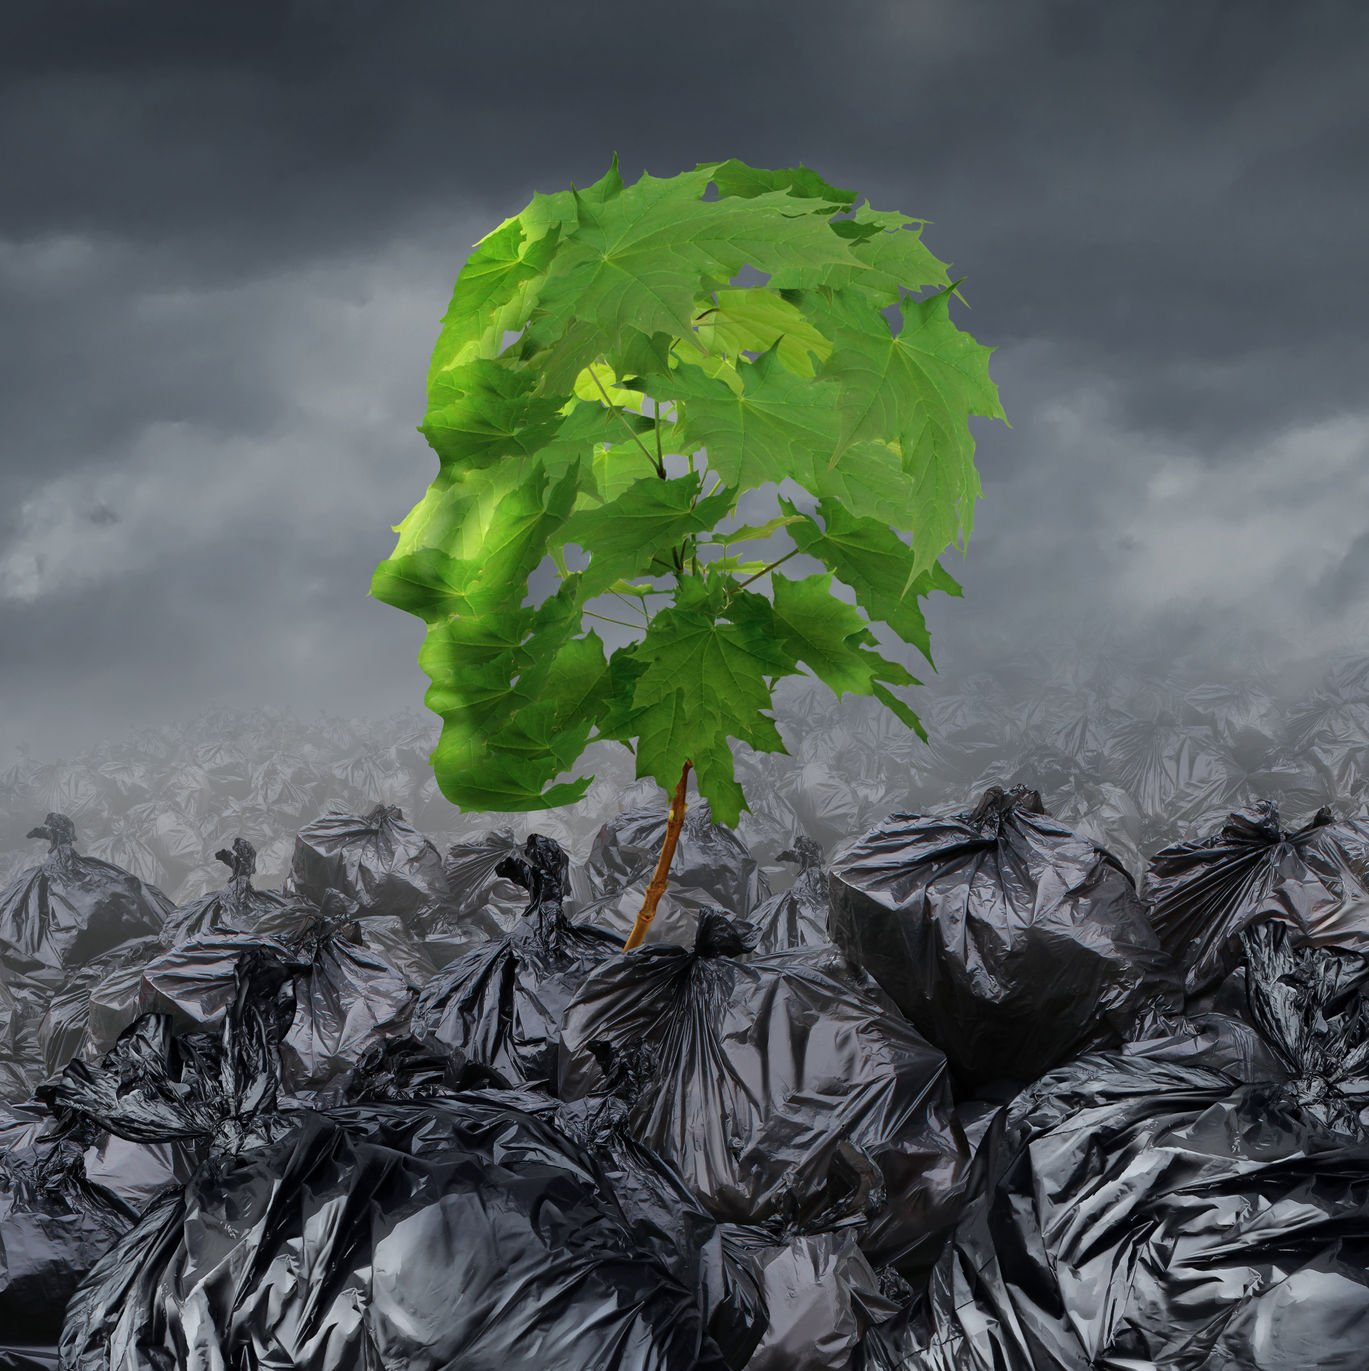 31815614 - rehabilitation concept and rehabilitate a suffering patient medical and mental health symbol going through rehab for drug abuse or emotional damage as a sapling tree with green leaves shaped as a human head growing out of a heap of garbage bags.